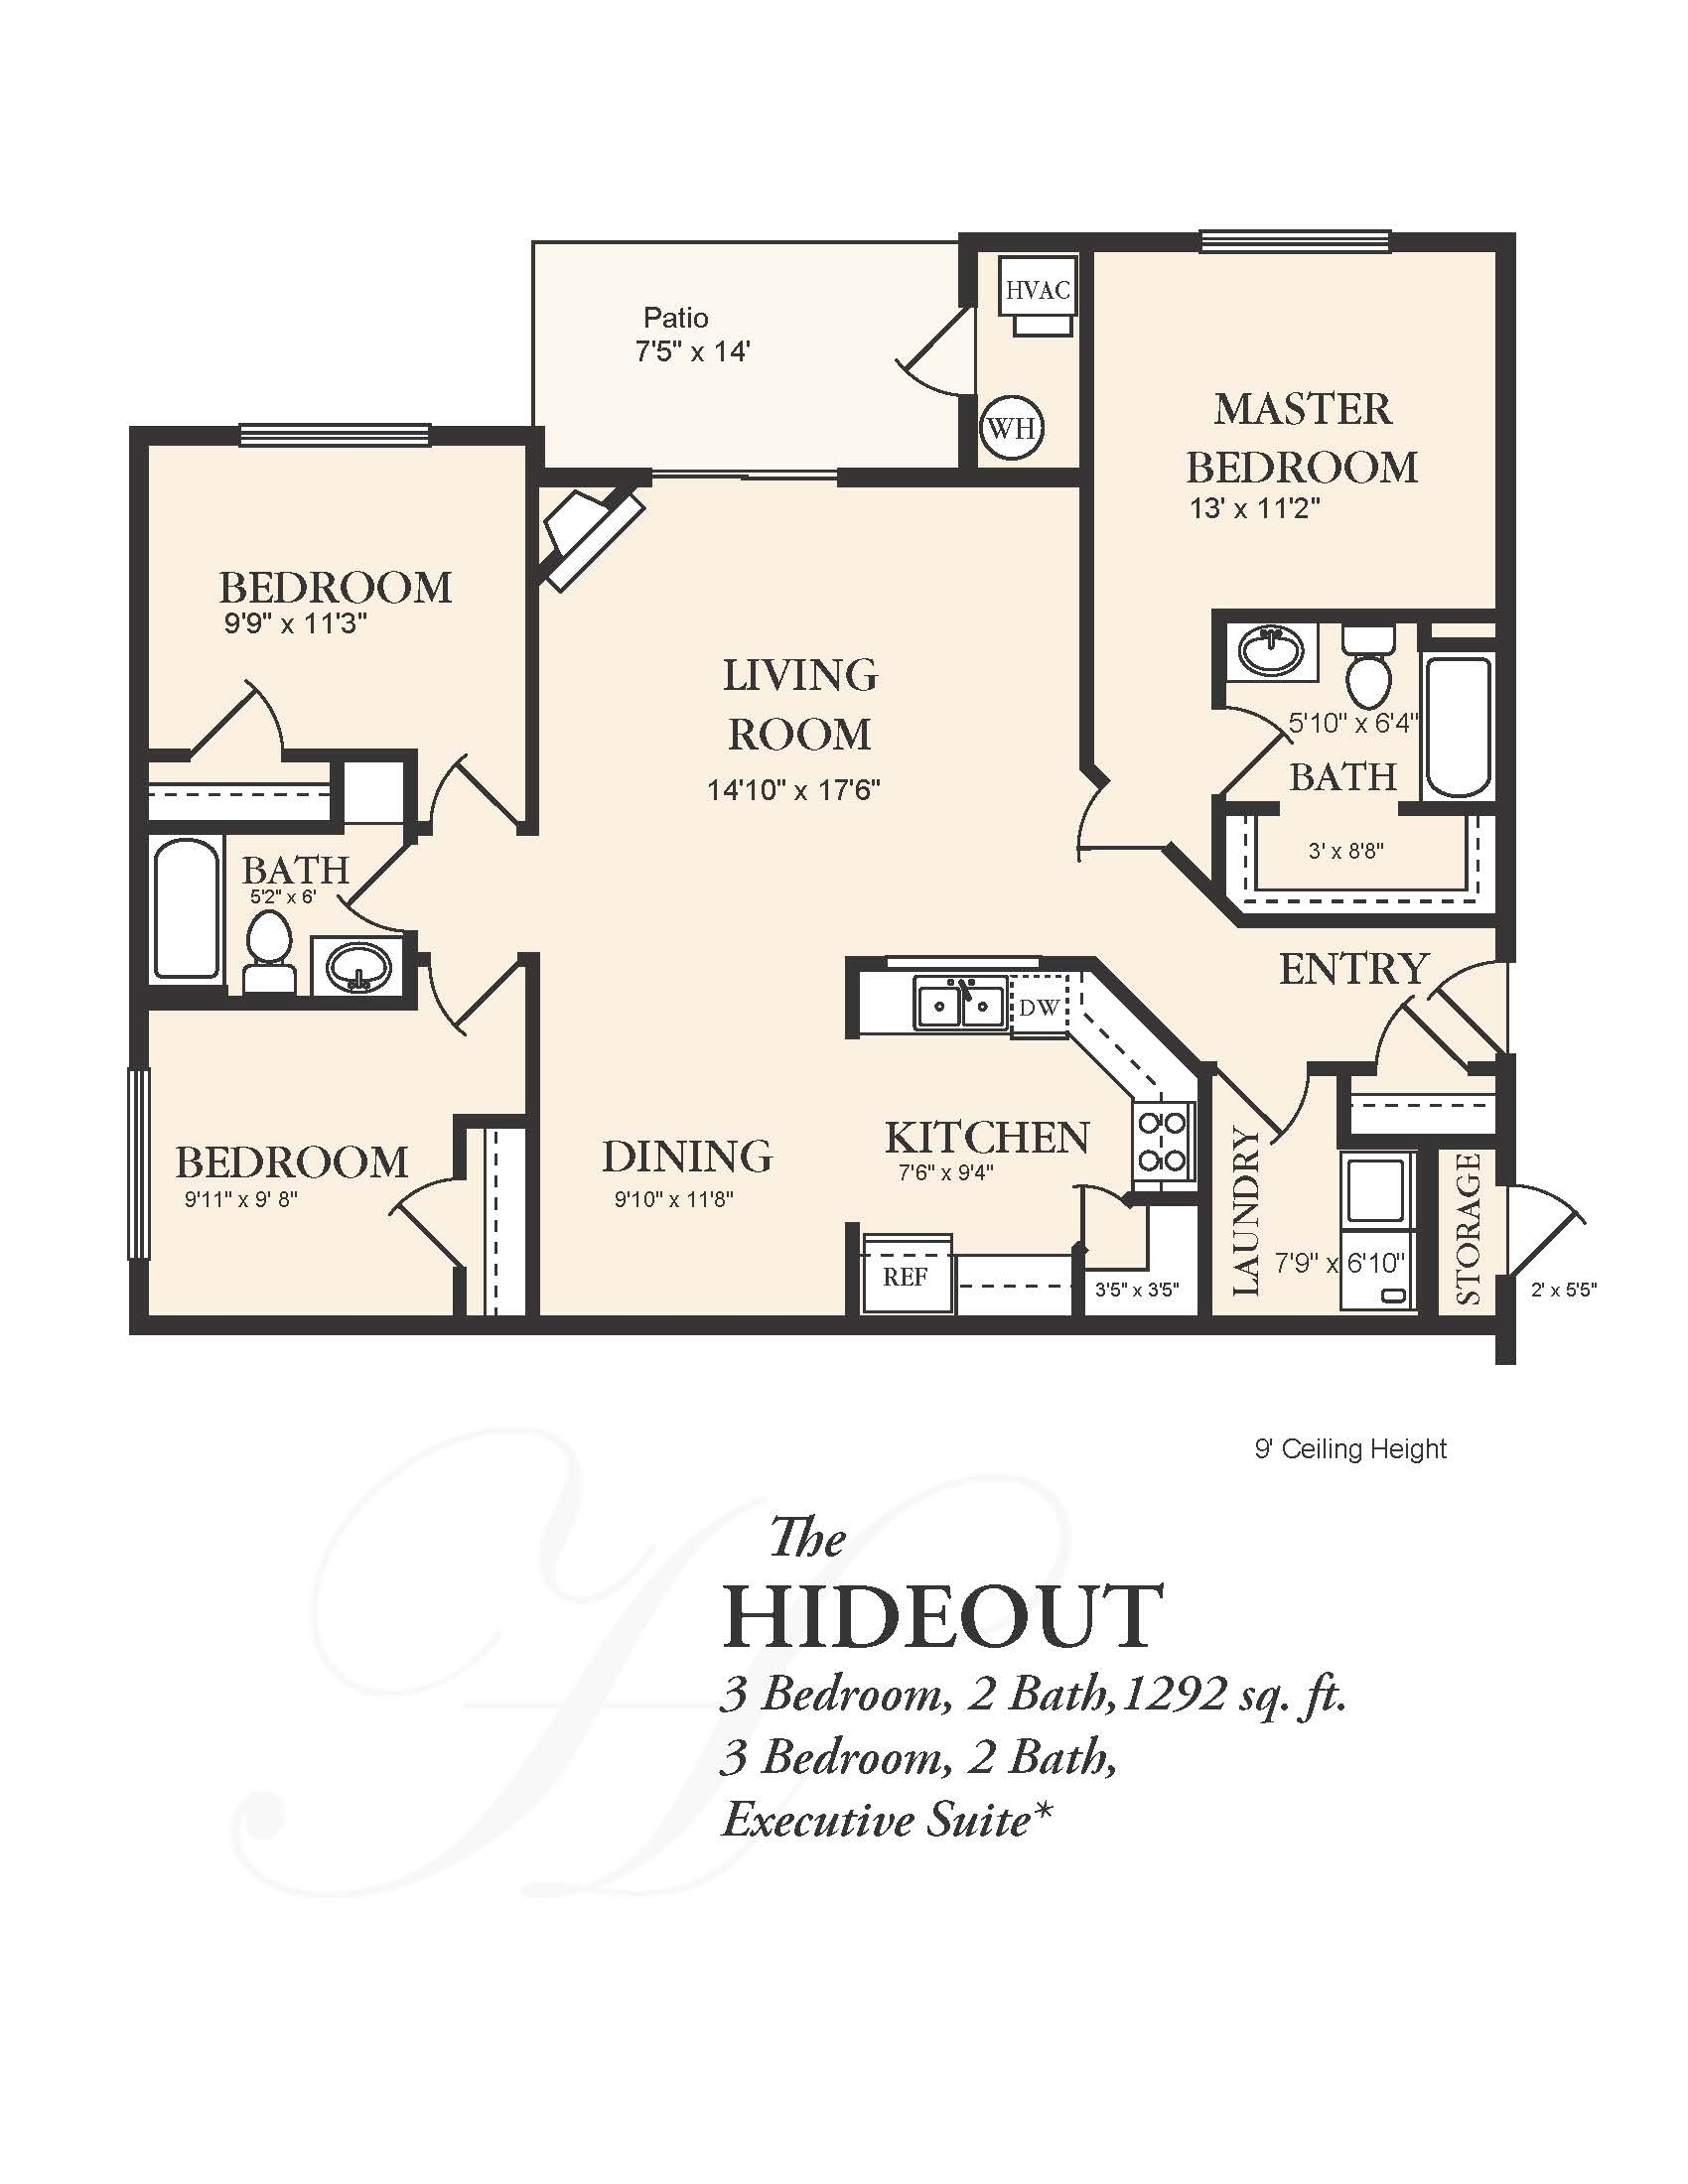 3 Bedroom Apartments Tampa: 3 Bedroom 2 Bathroom Apartment Priced At $2500